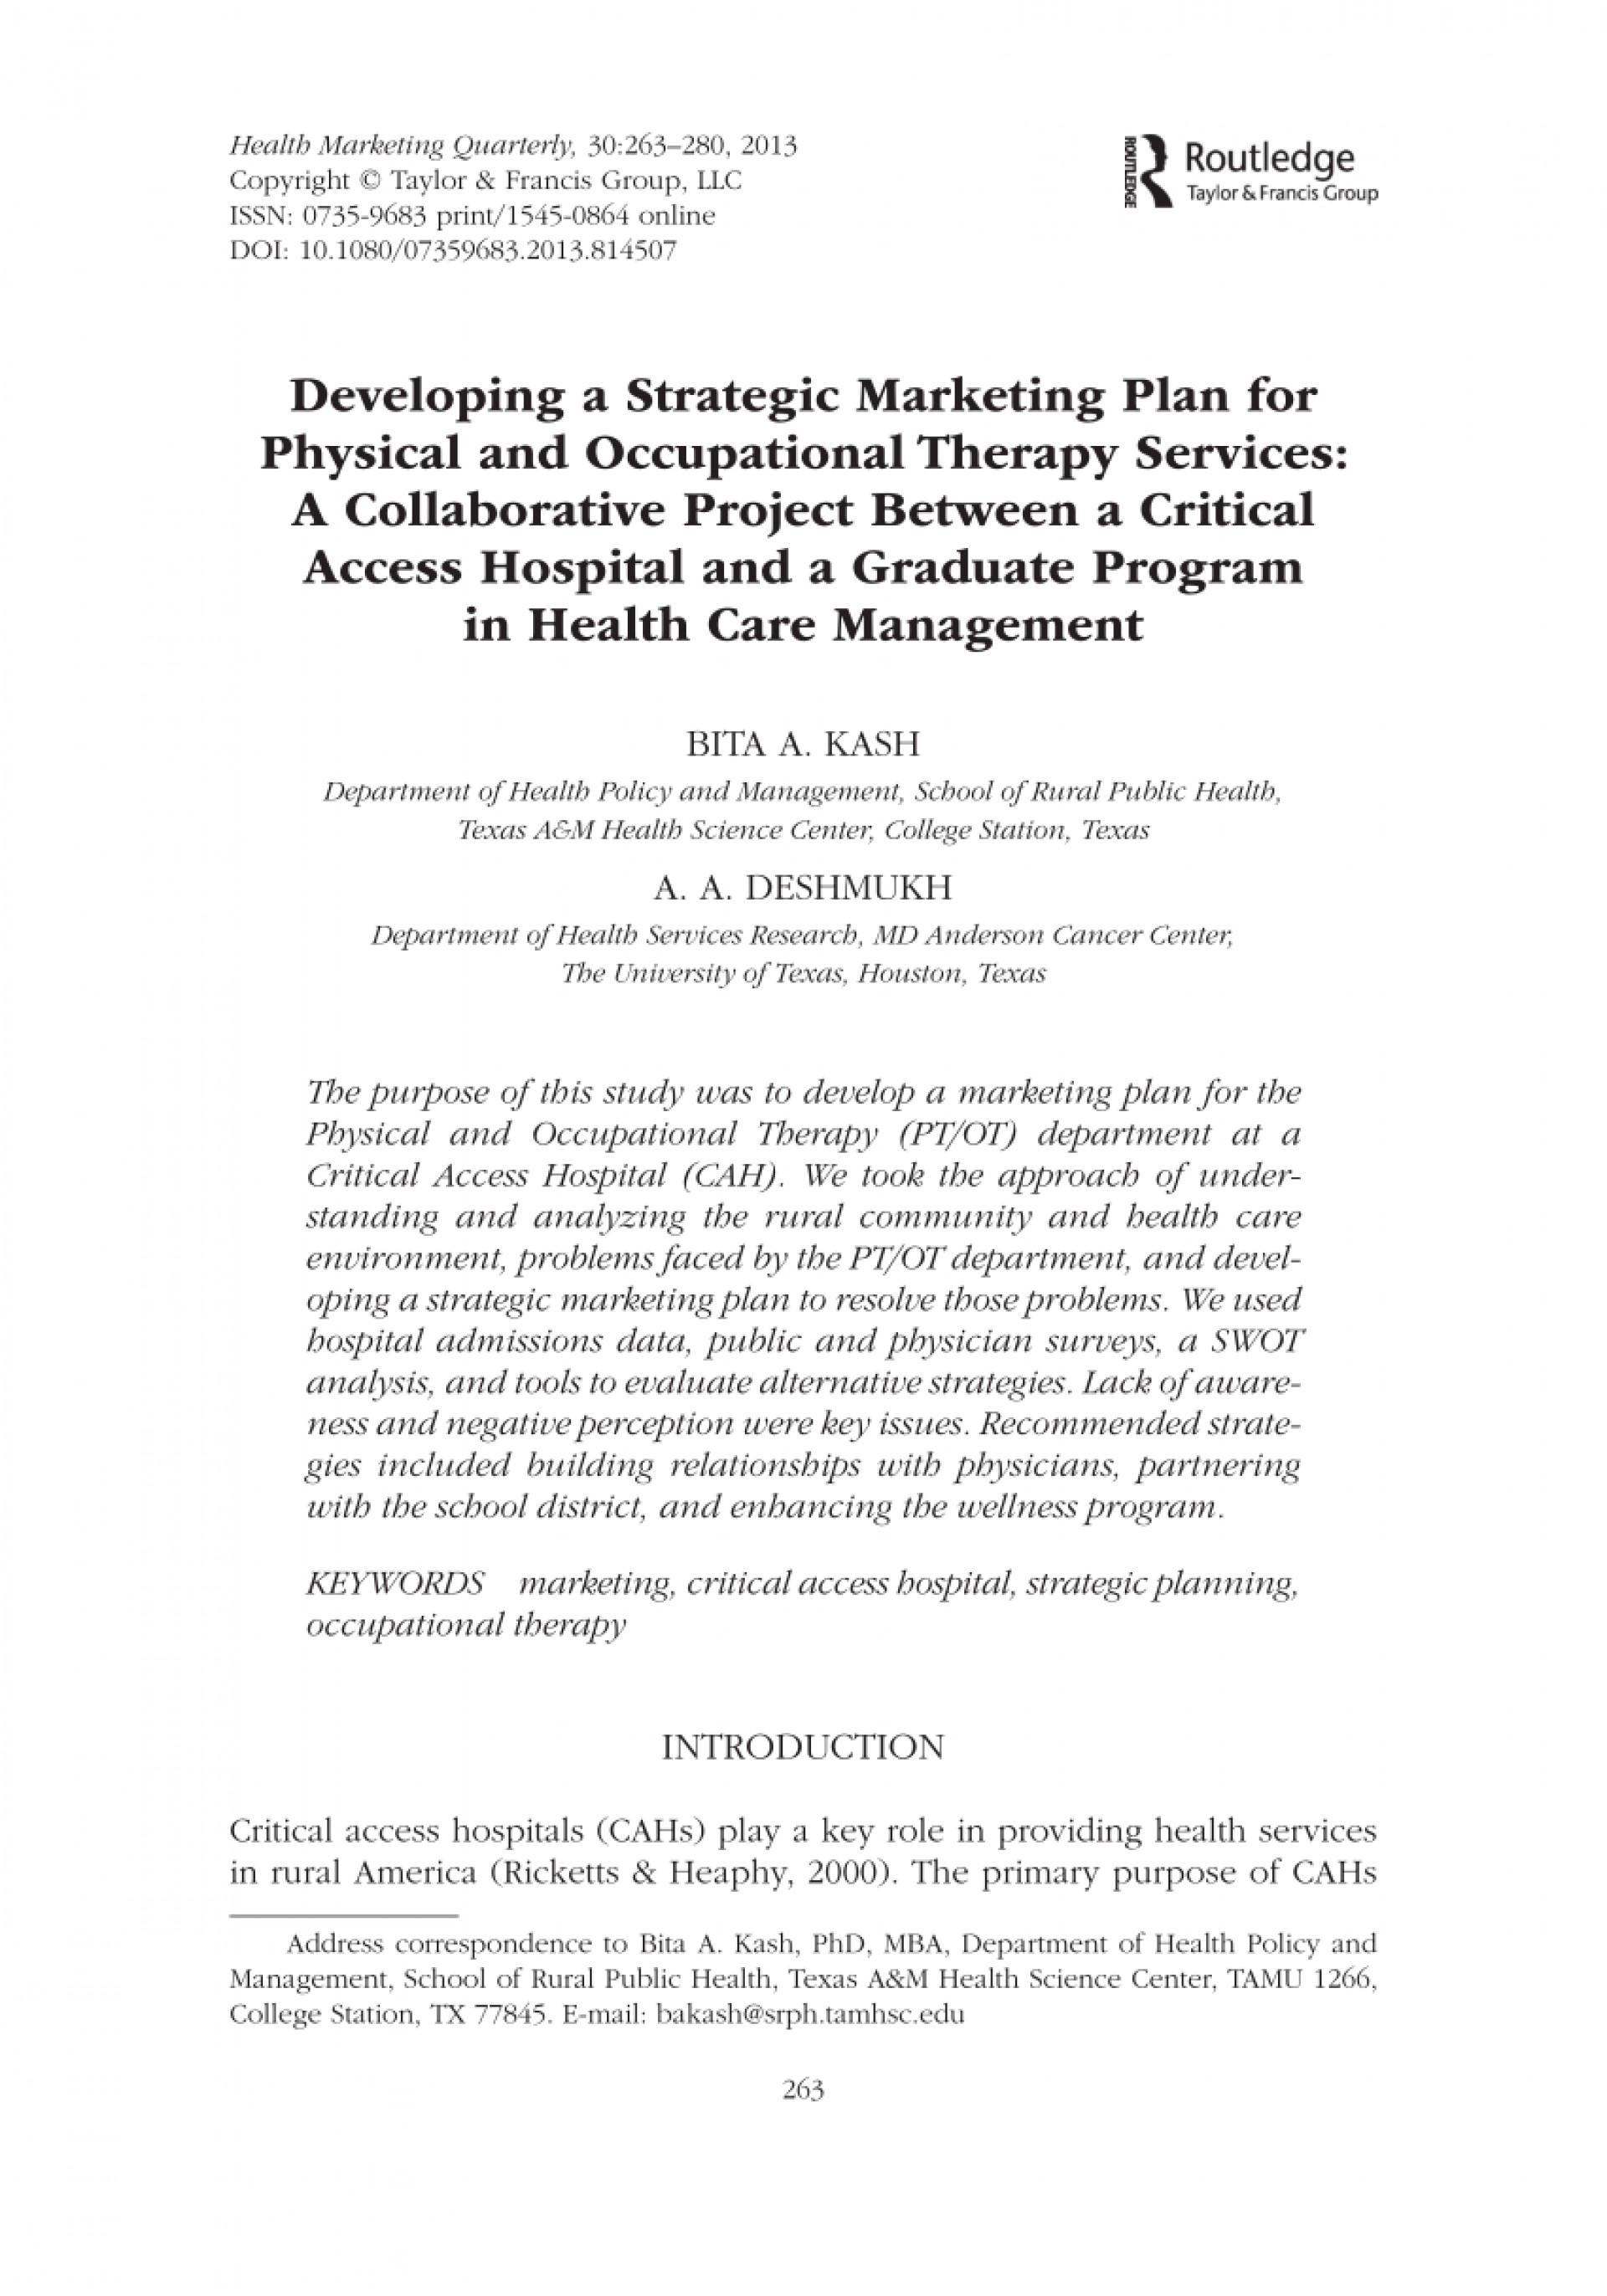 008 Research Paper Cancer Marketing Plan Mba Image Hd Largepreview For Admission Archaicawful Lung Pdf Topics Prostate 1920